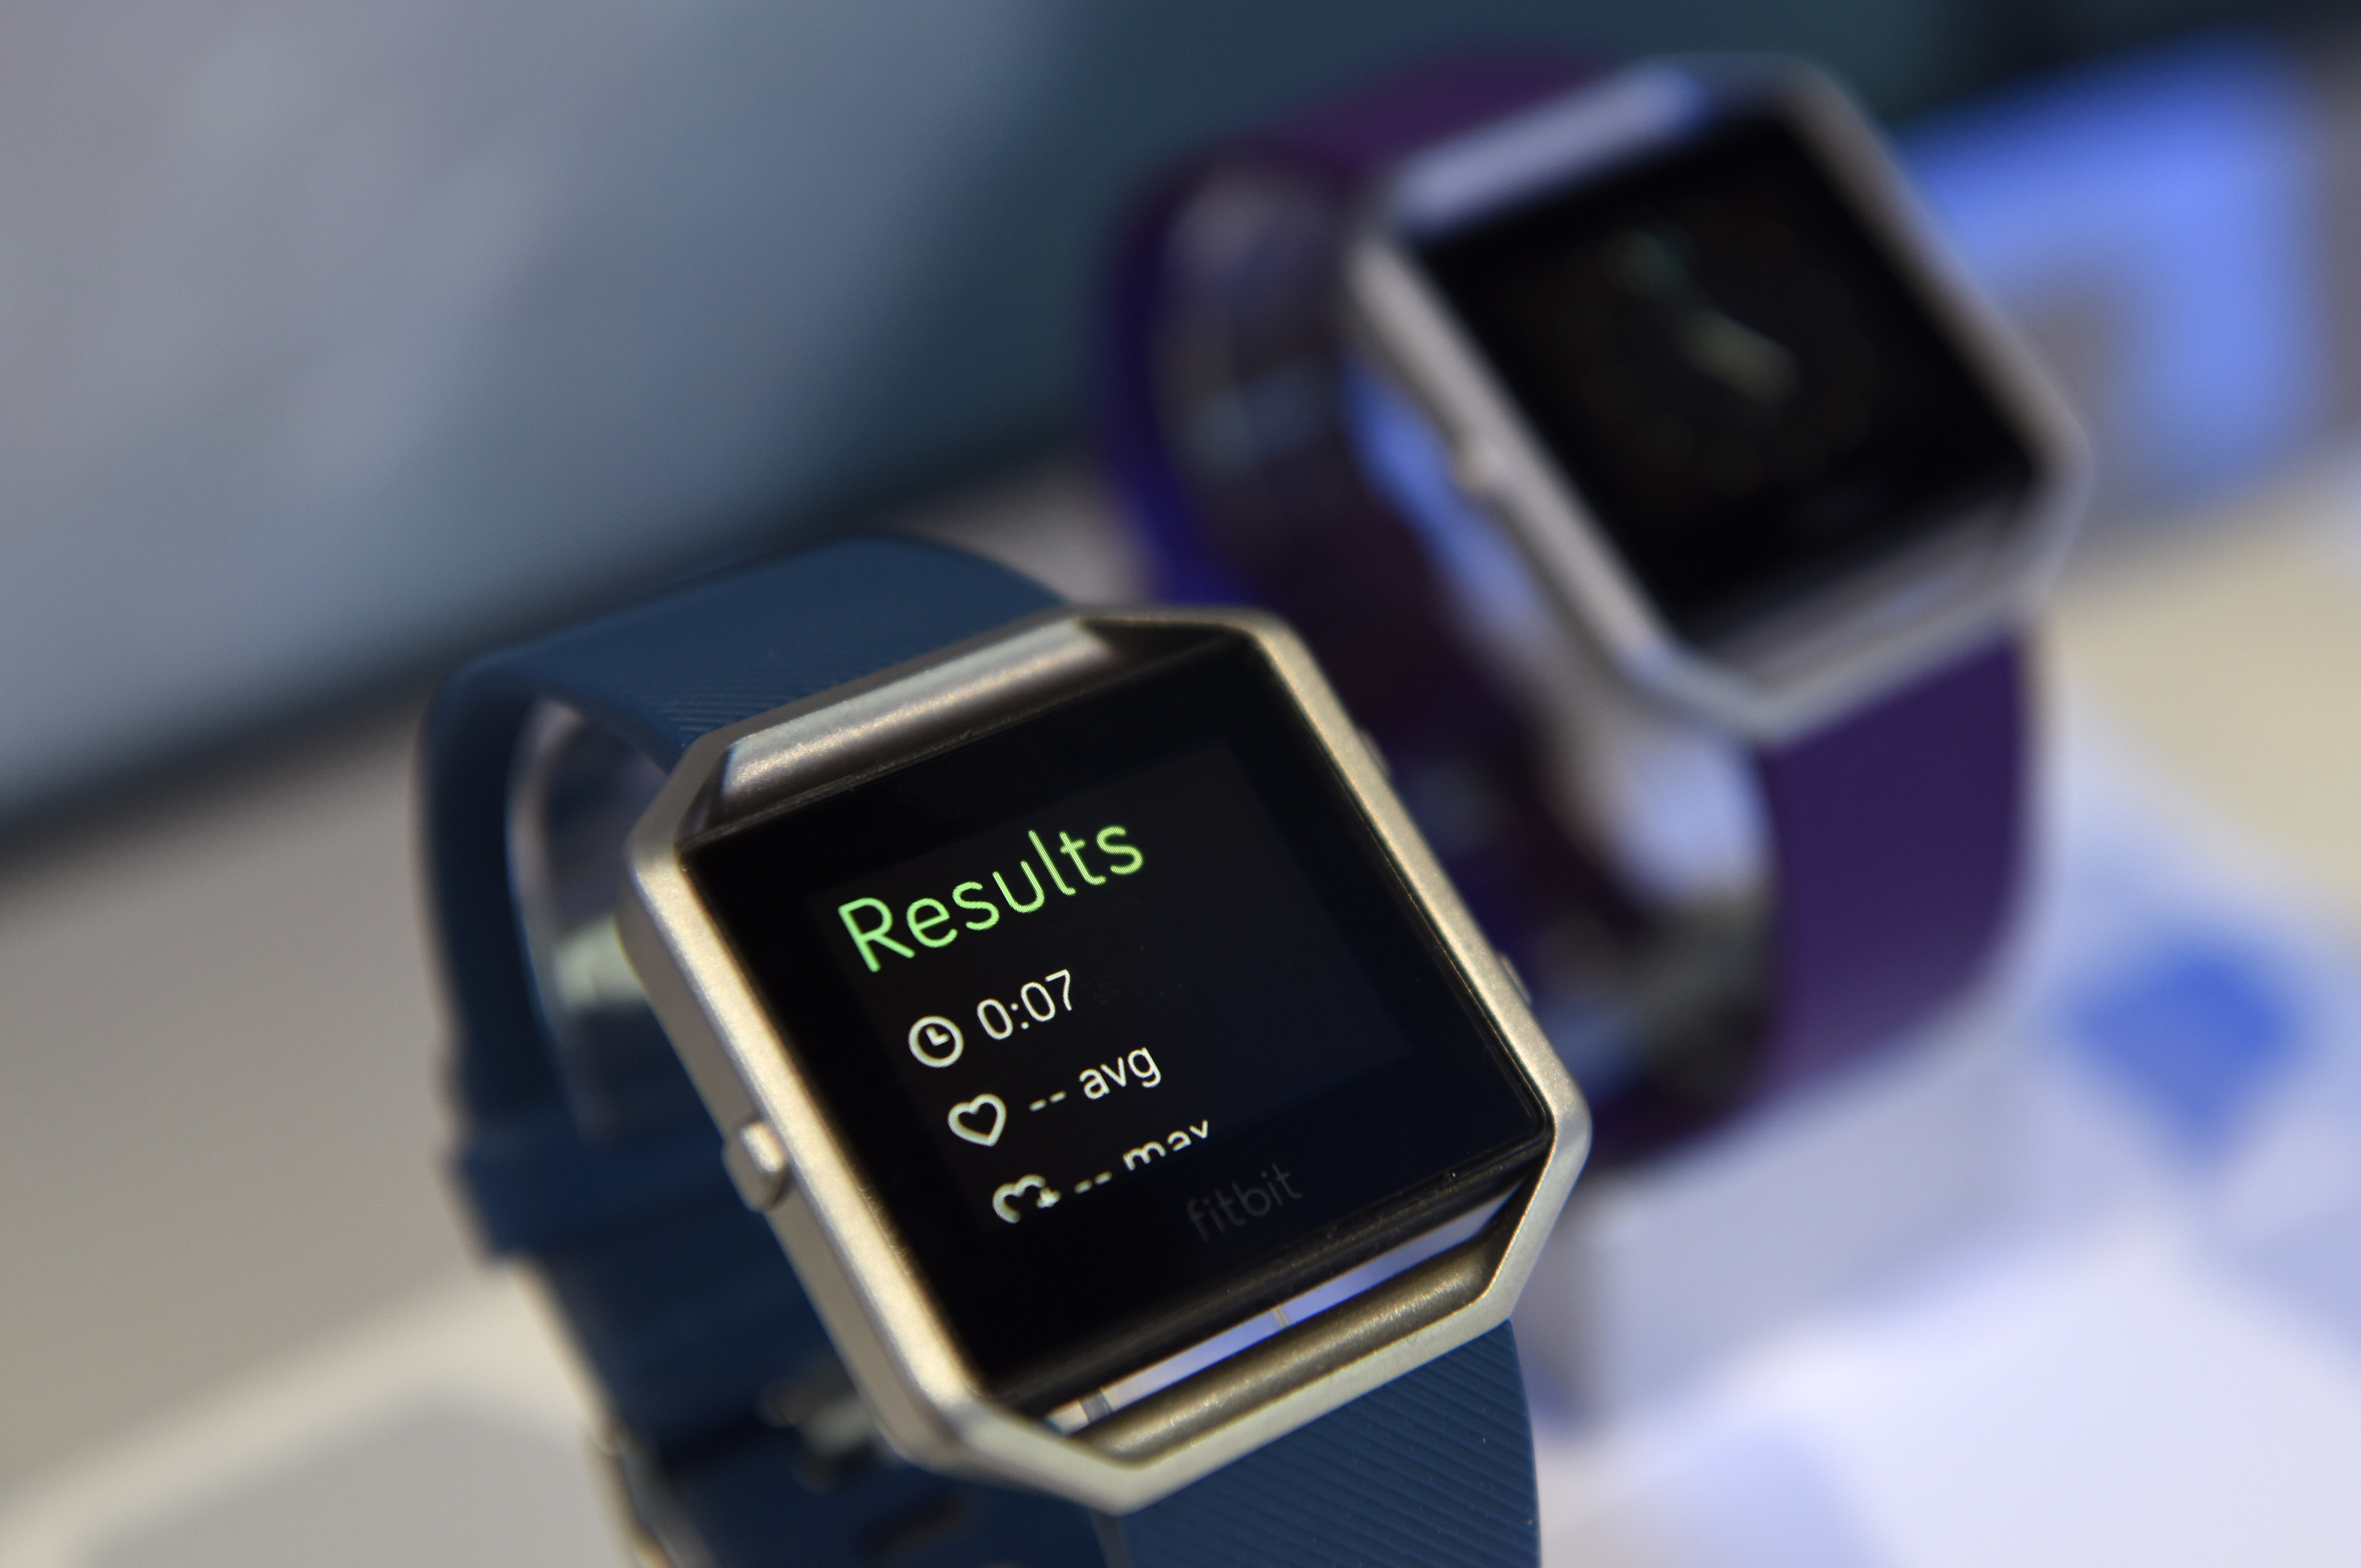 The Fitbit Inc. Blaze fitness tracker is displayed during the 2016 Consumer Electronics Show (CES) in Las Vegas, Nevada, U.S., on Friday, Jan. 8, 2016.